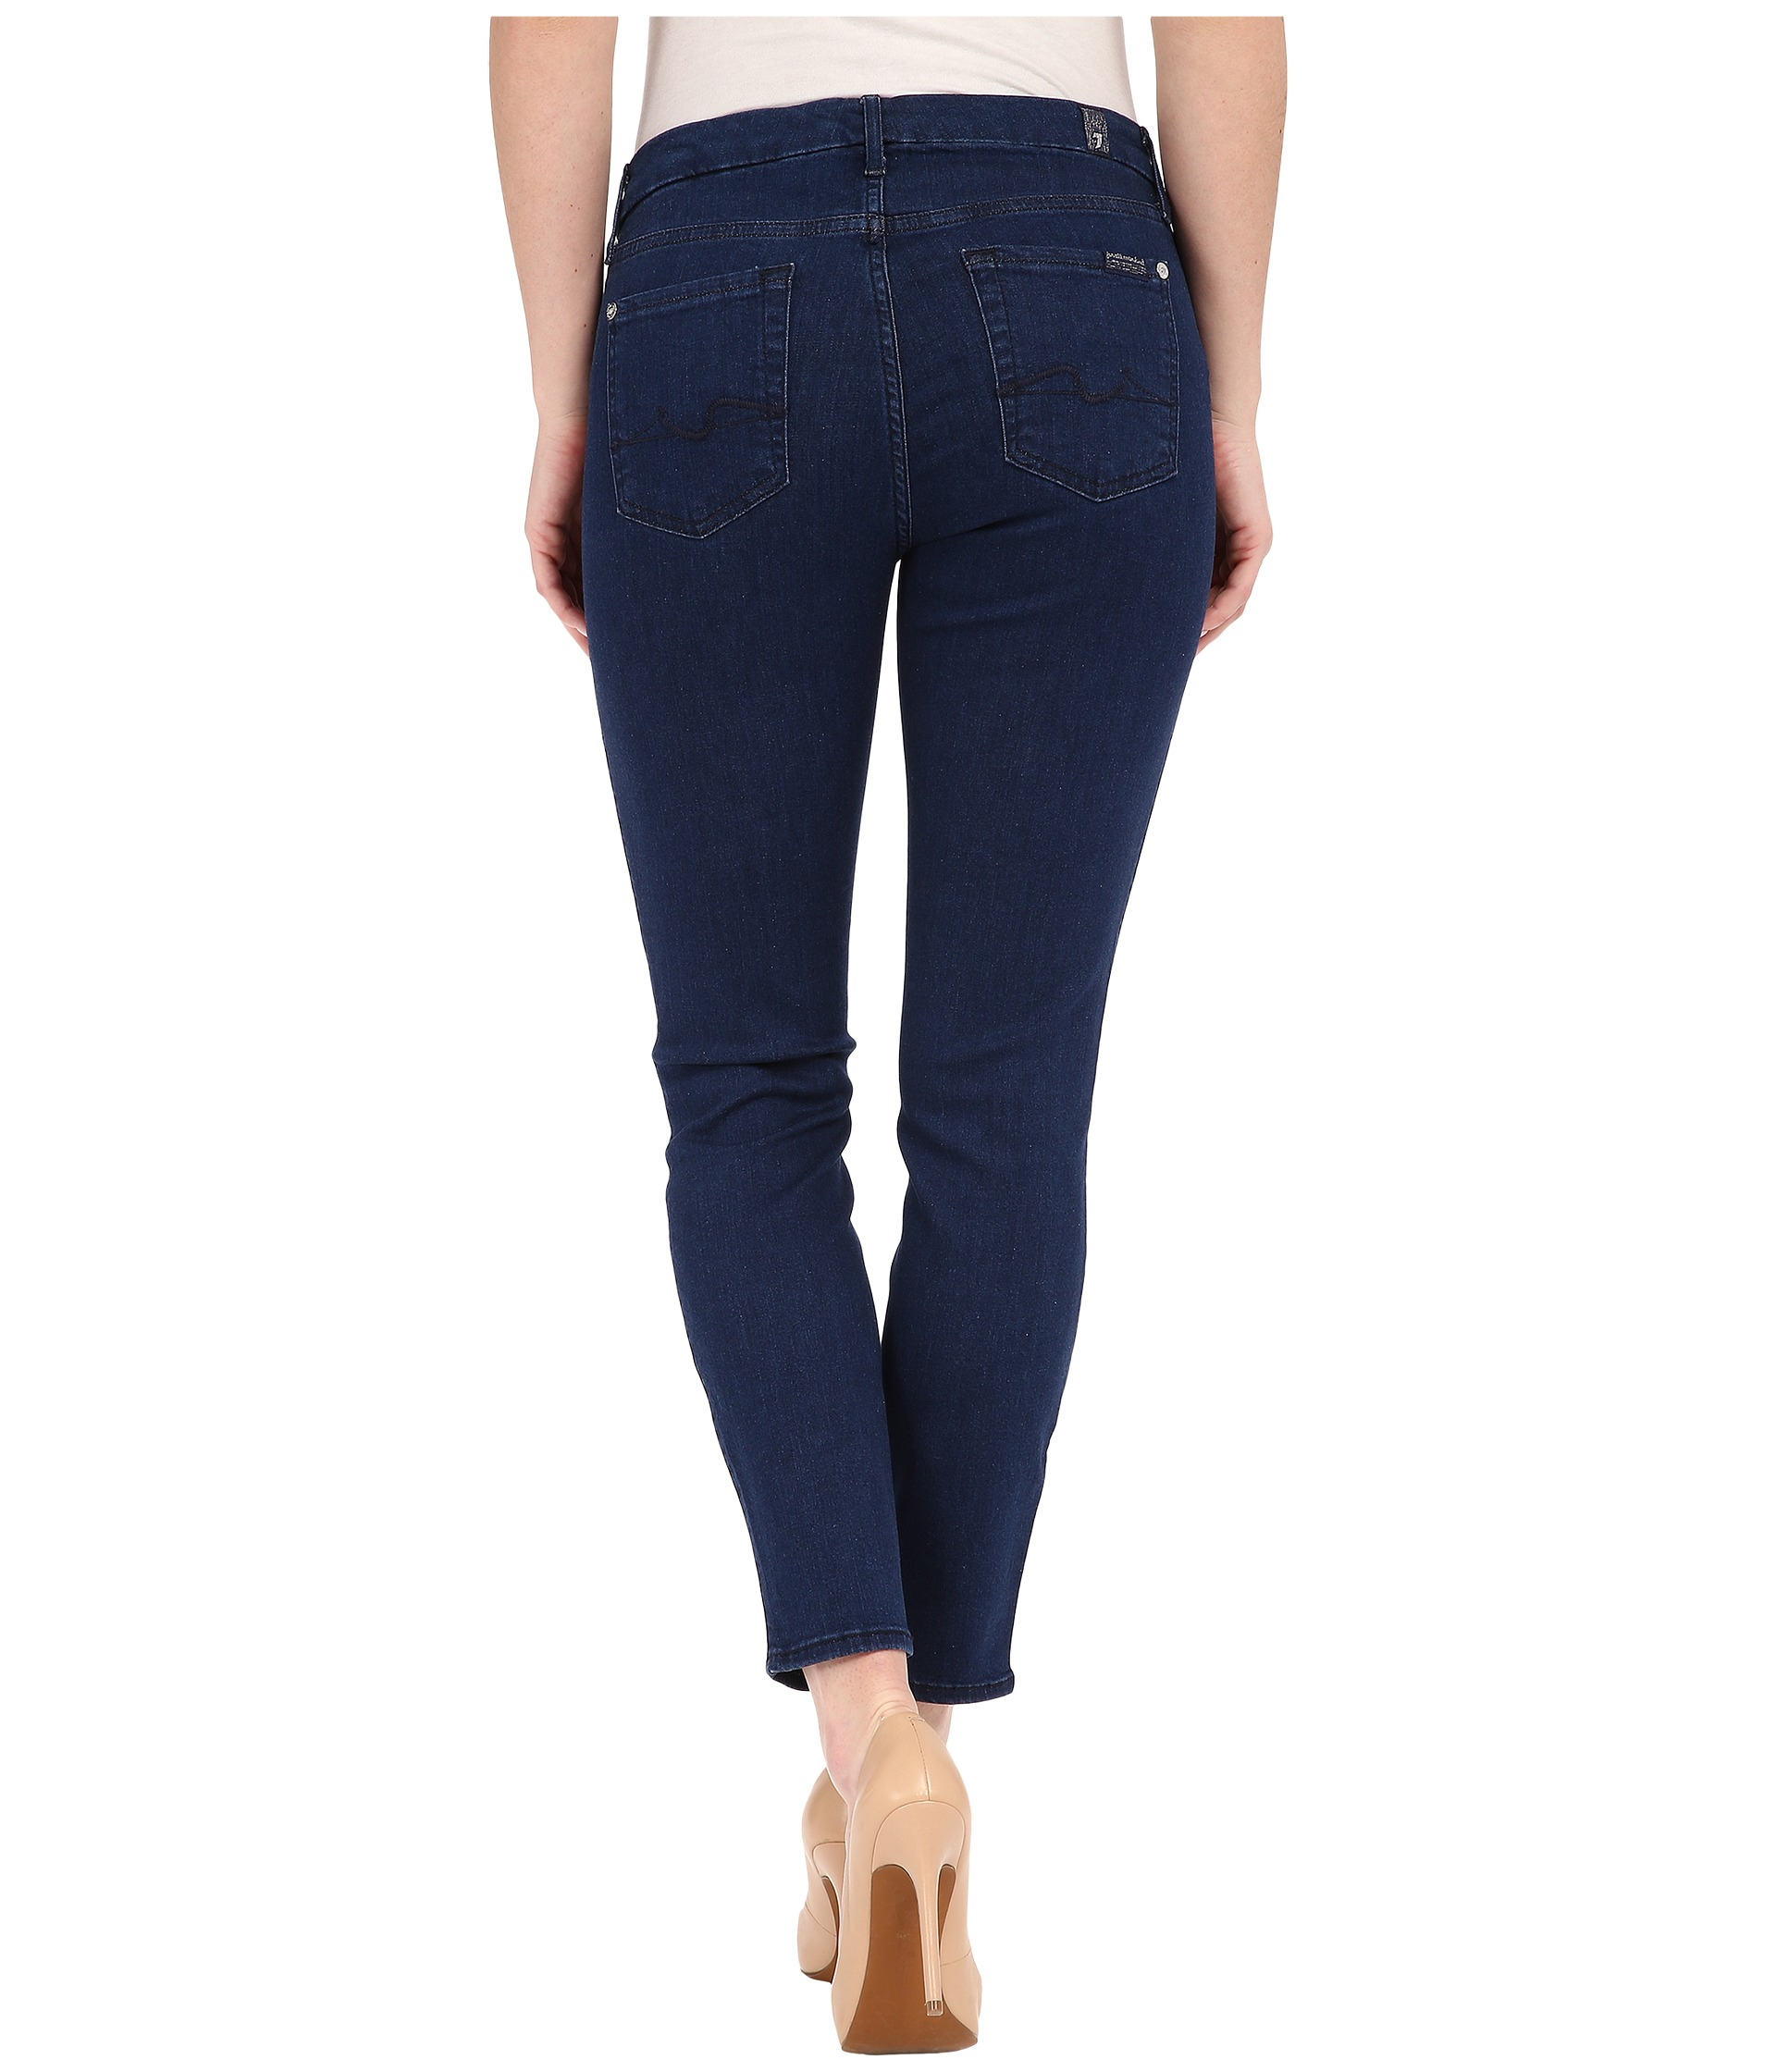 The Skinny Crop Slim Illusion jeans 7 For All Mankind e4PKii0sm